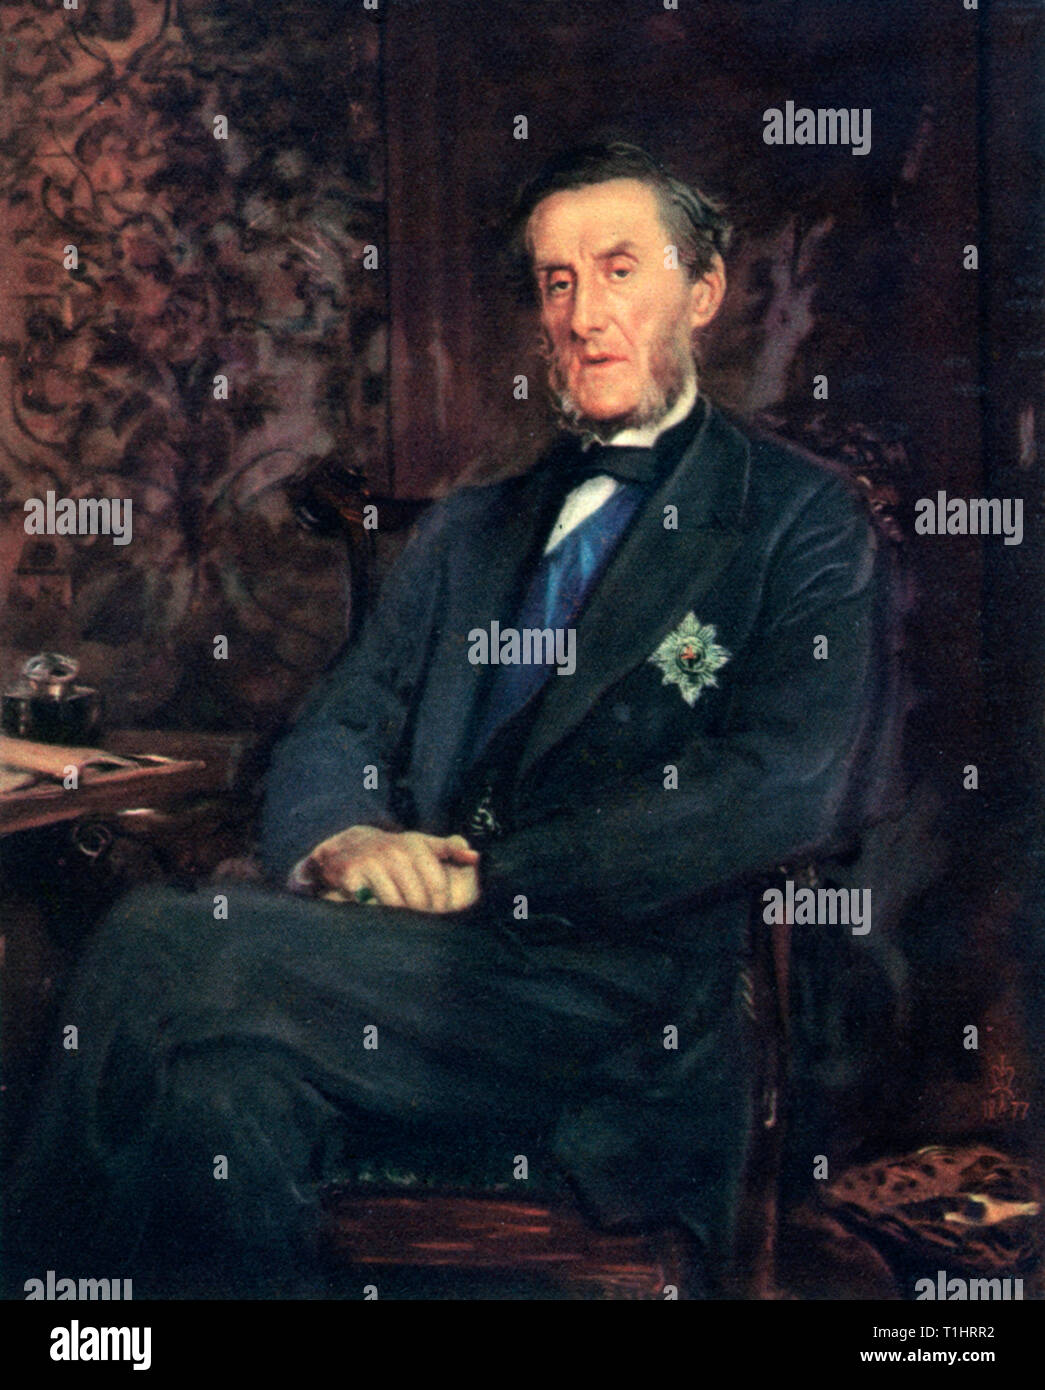 Anthony Ashley-Cooper, Seventh Earl of Shaftesbury, 1877. By Sir John Everett Millais (1829-1896). Anthony Ashley-Cooper, Seventh Earl of Shaftesbury (1801-1885), English politician, philanthropist and social reformer. - Stock Image